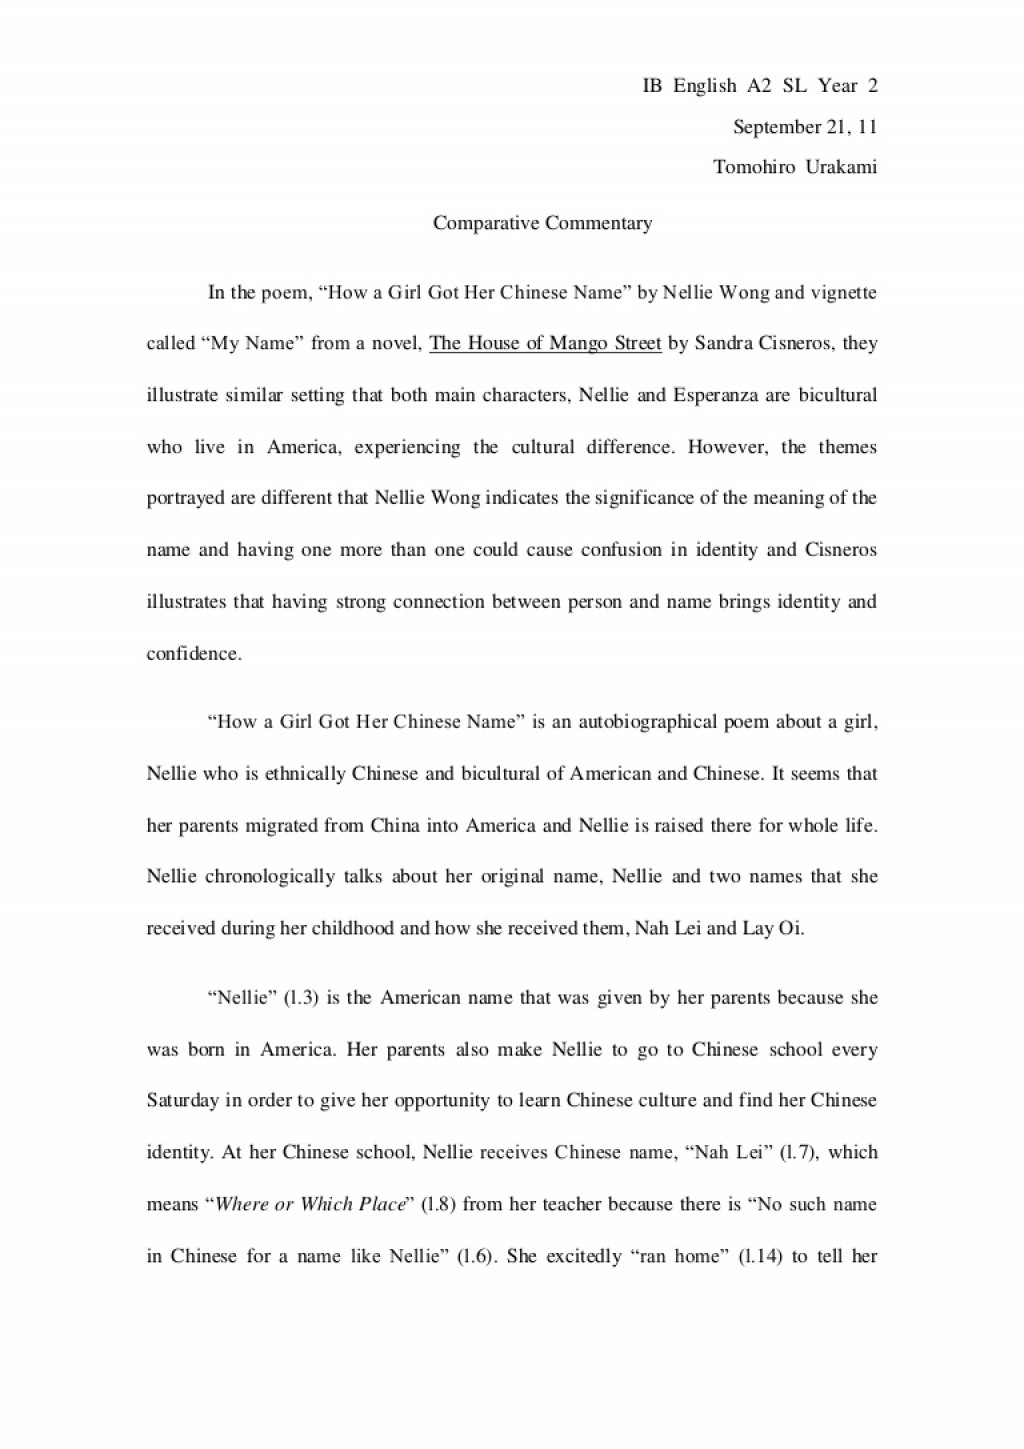 008 Compare And Contrast Essays Comparativeessaydraft Phpapp02 Thumbnail Magnificent Essay Examples Elementary 7th Grade College Level Large